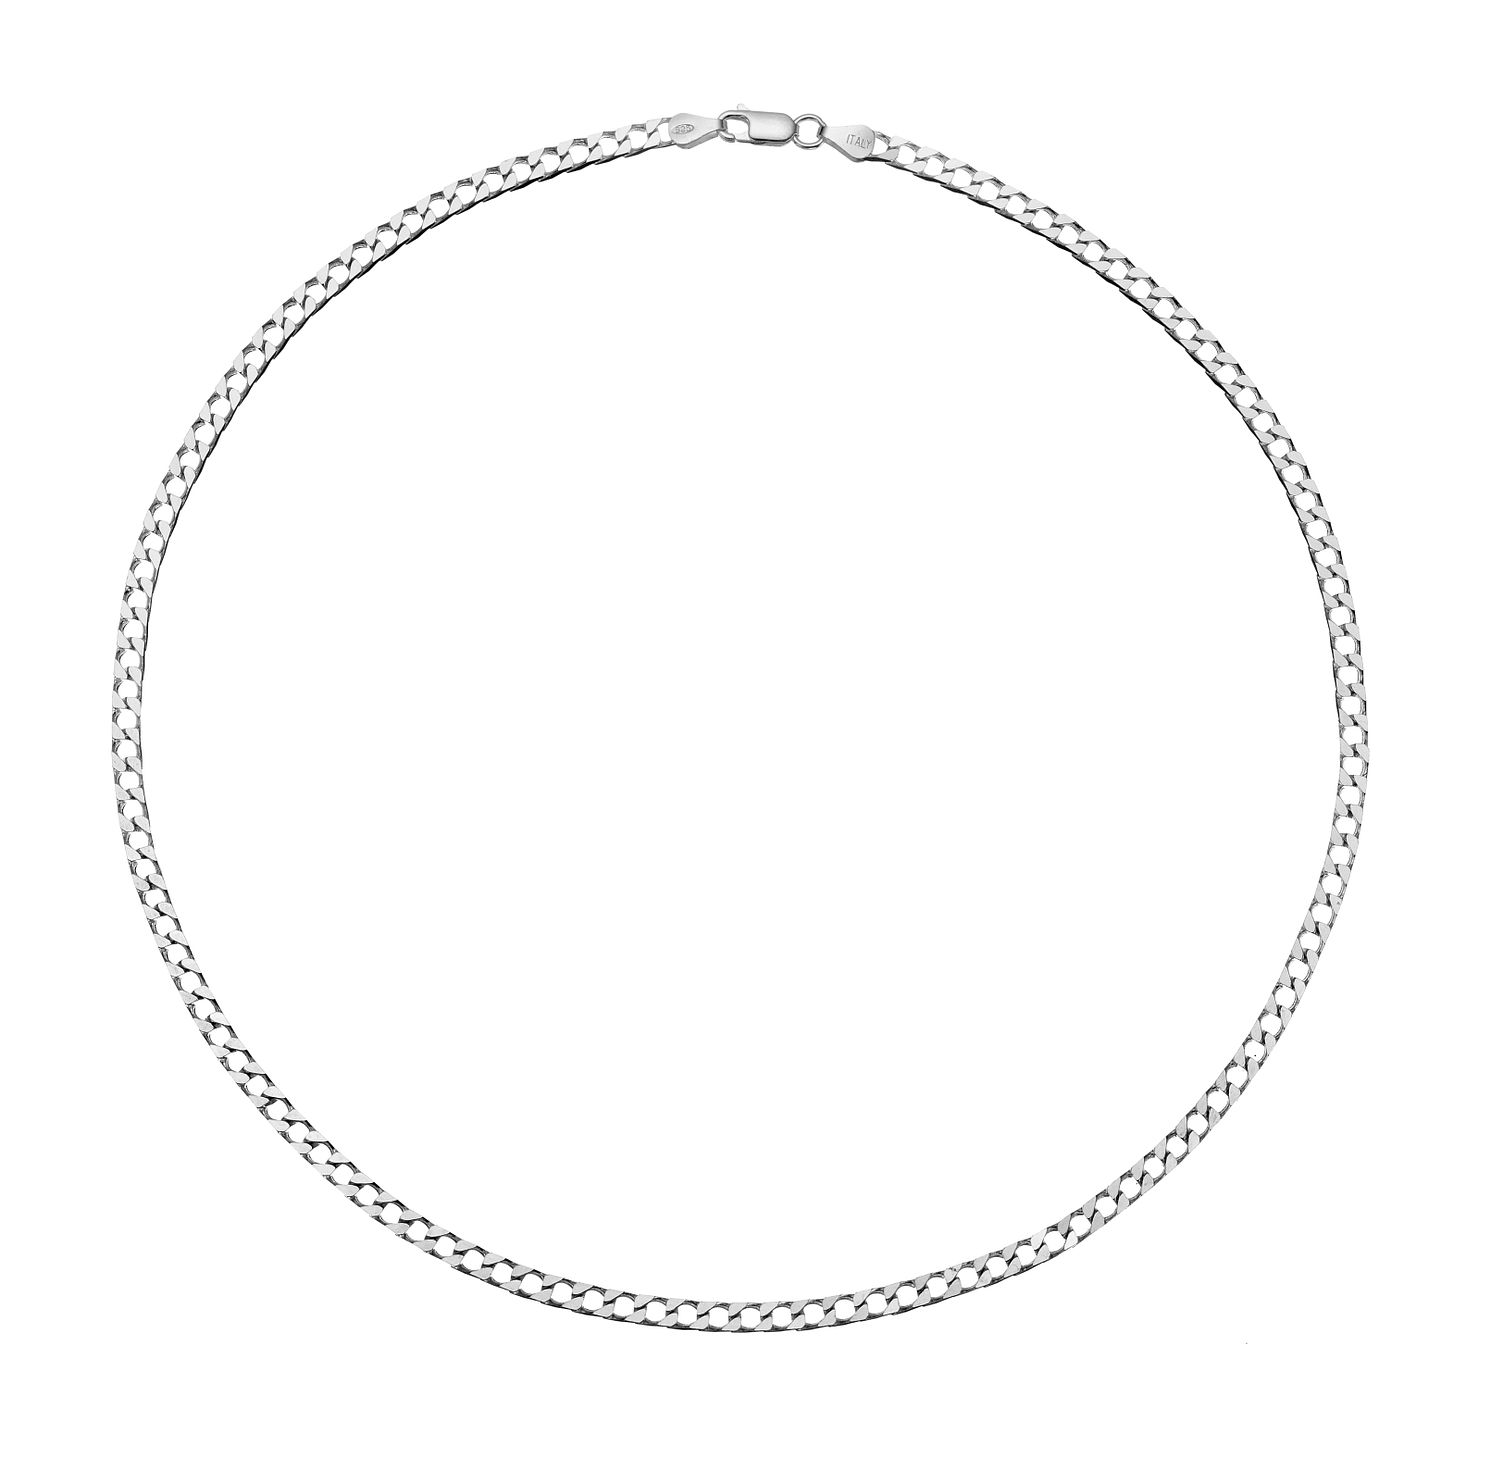 Sterling Silver 20 inches Flat Curb Chain Necklace - Product number 3271196